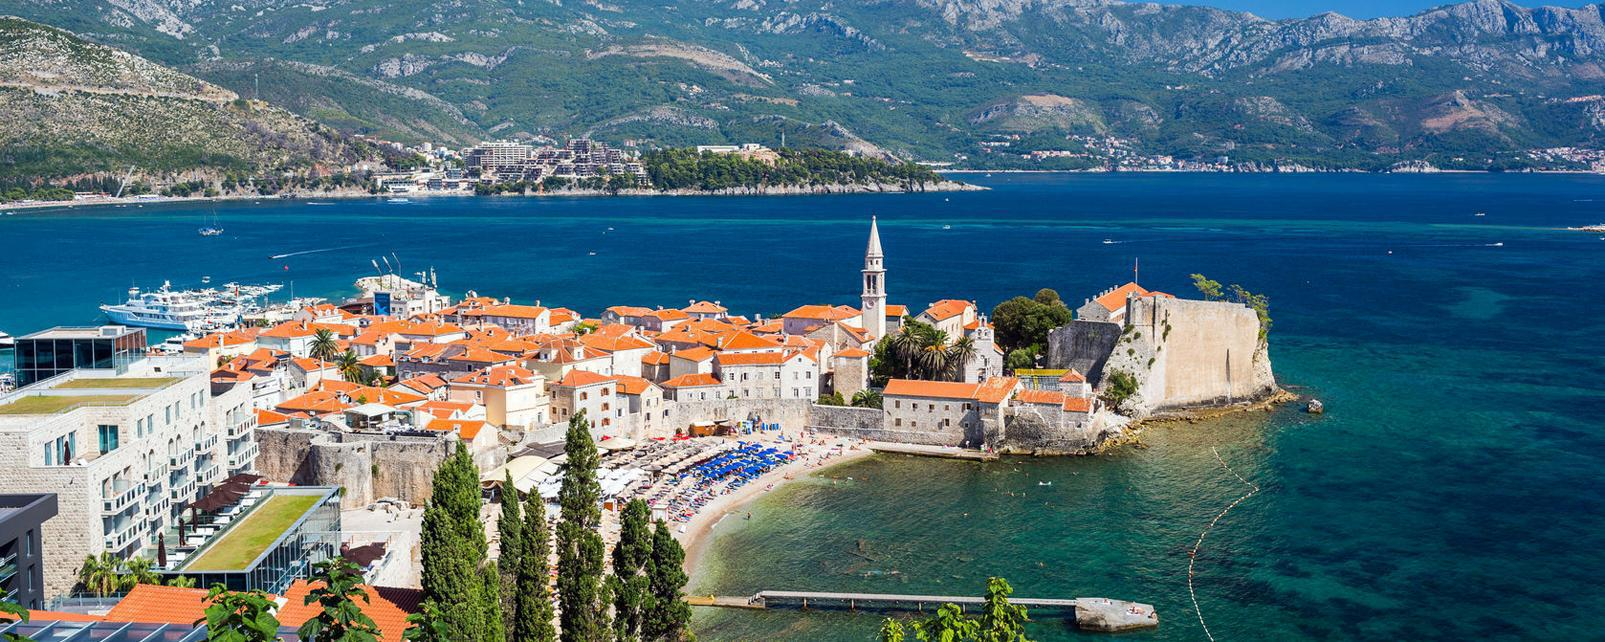 budva-is-a-beautiful-and-historic-town-with-excellent-be-secret-world